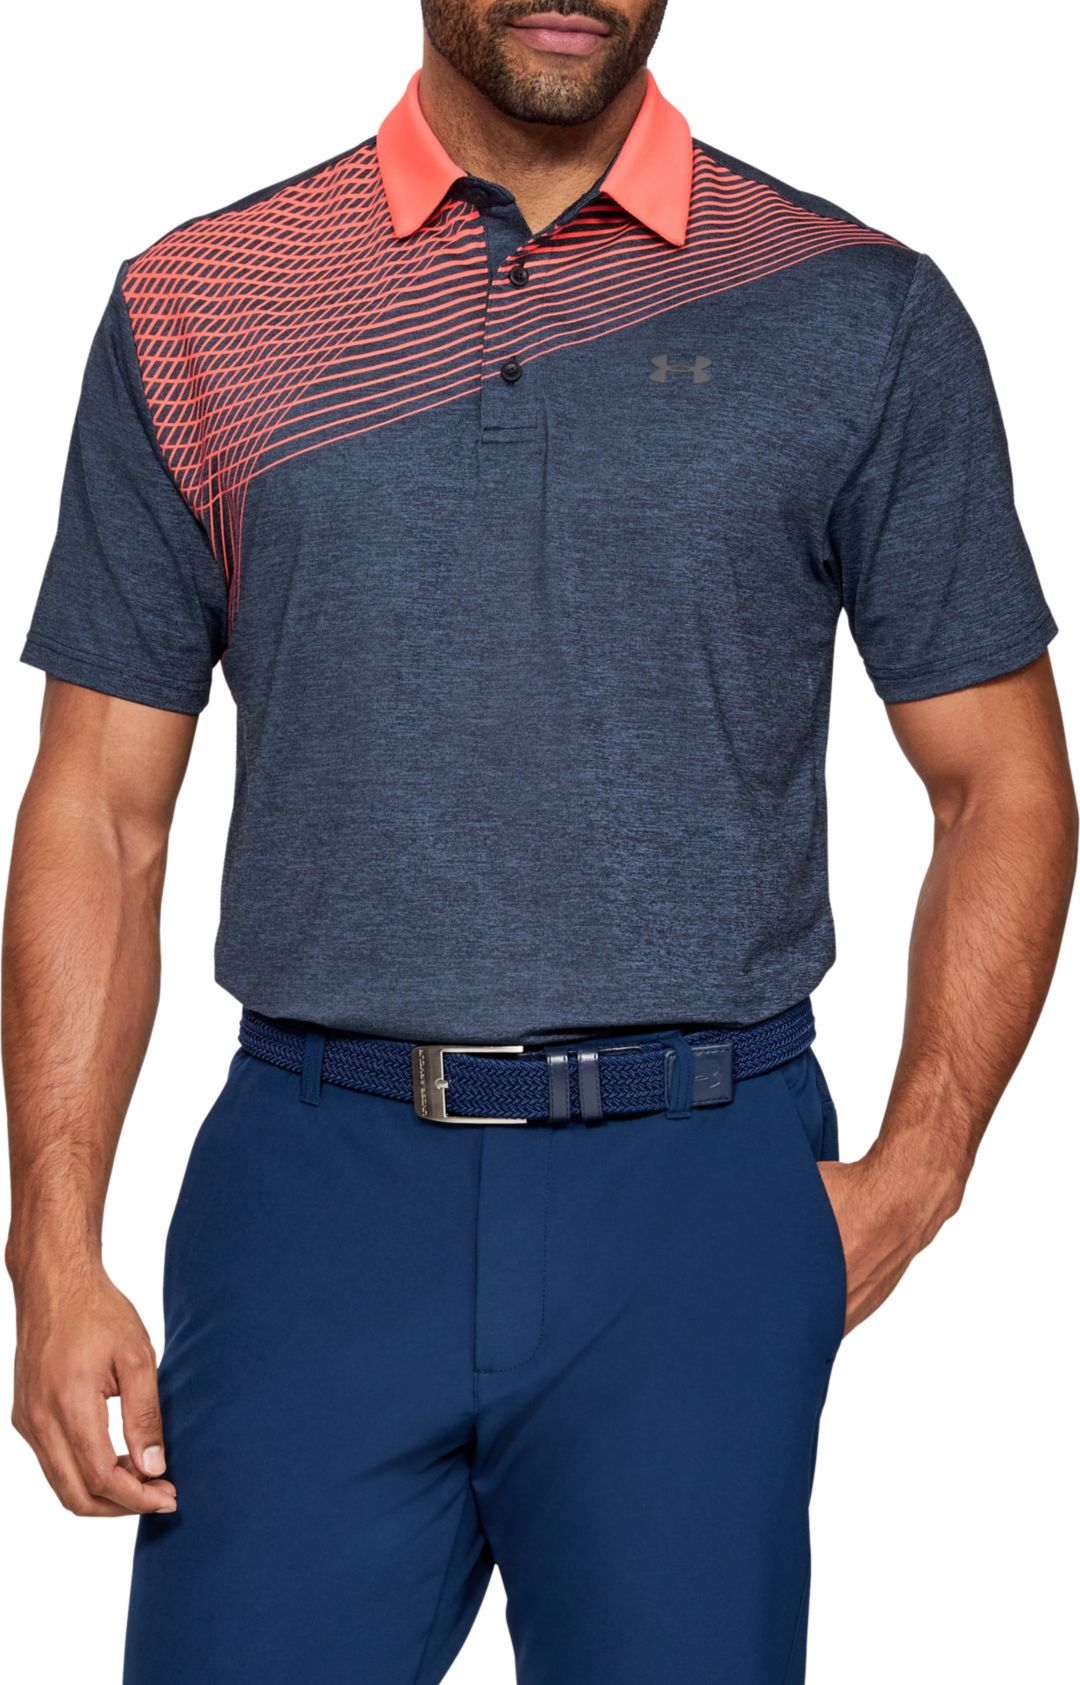 d004cd5d Under Armour Men's Playoff 2.0 Backswing Golf Polo | DICK'S Sporting ...